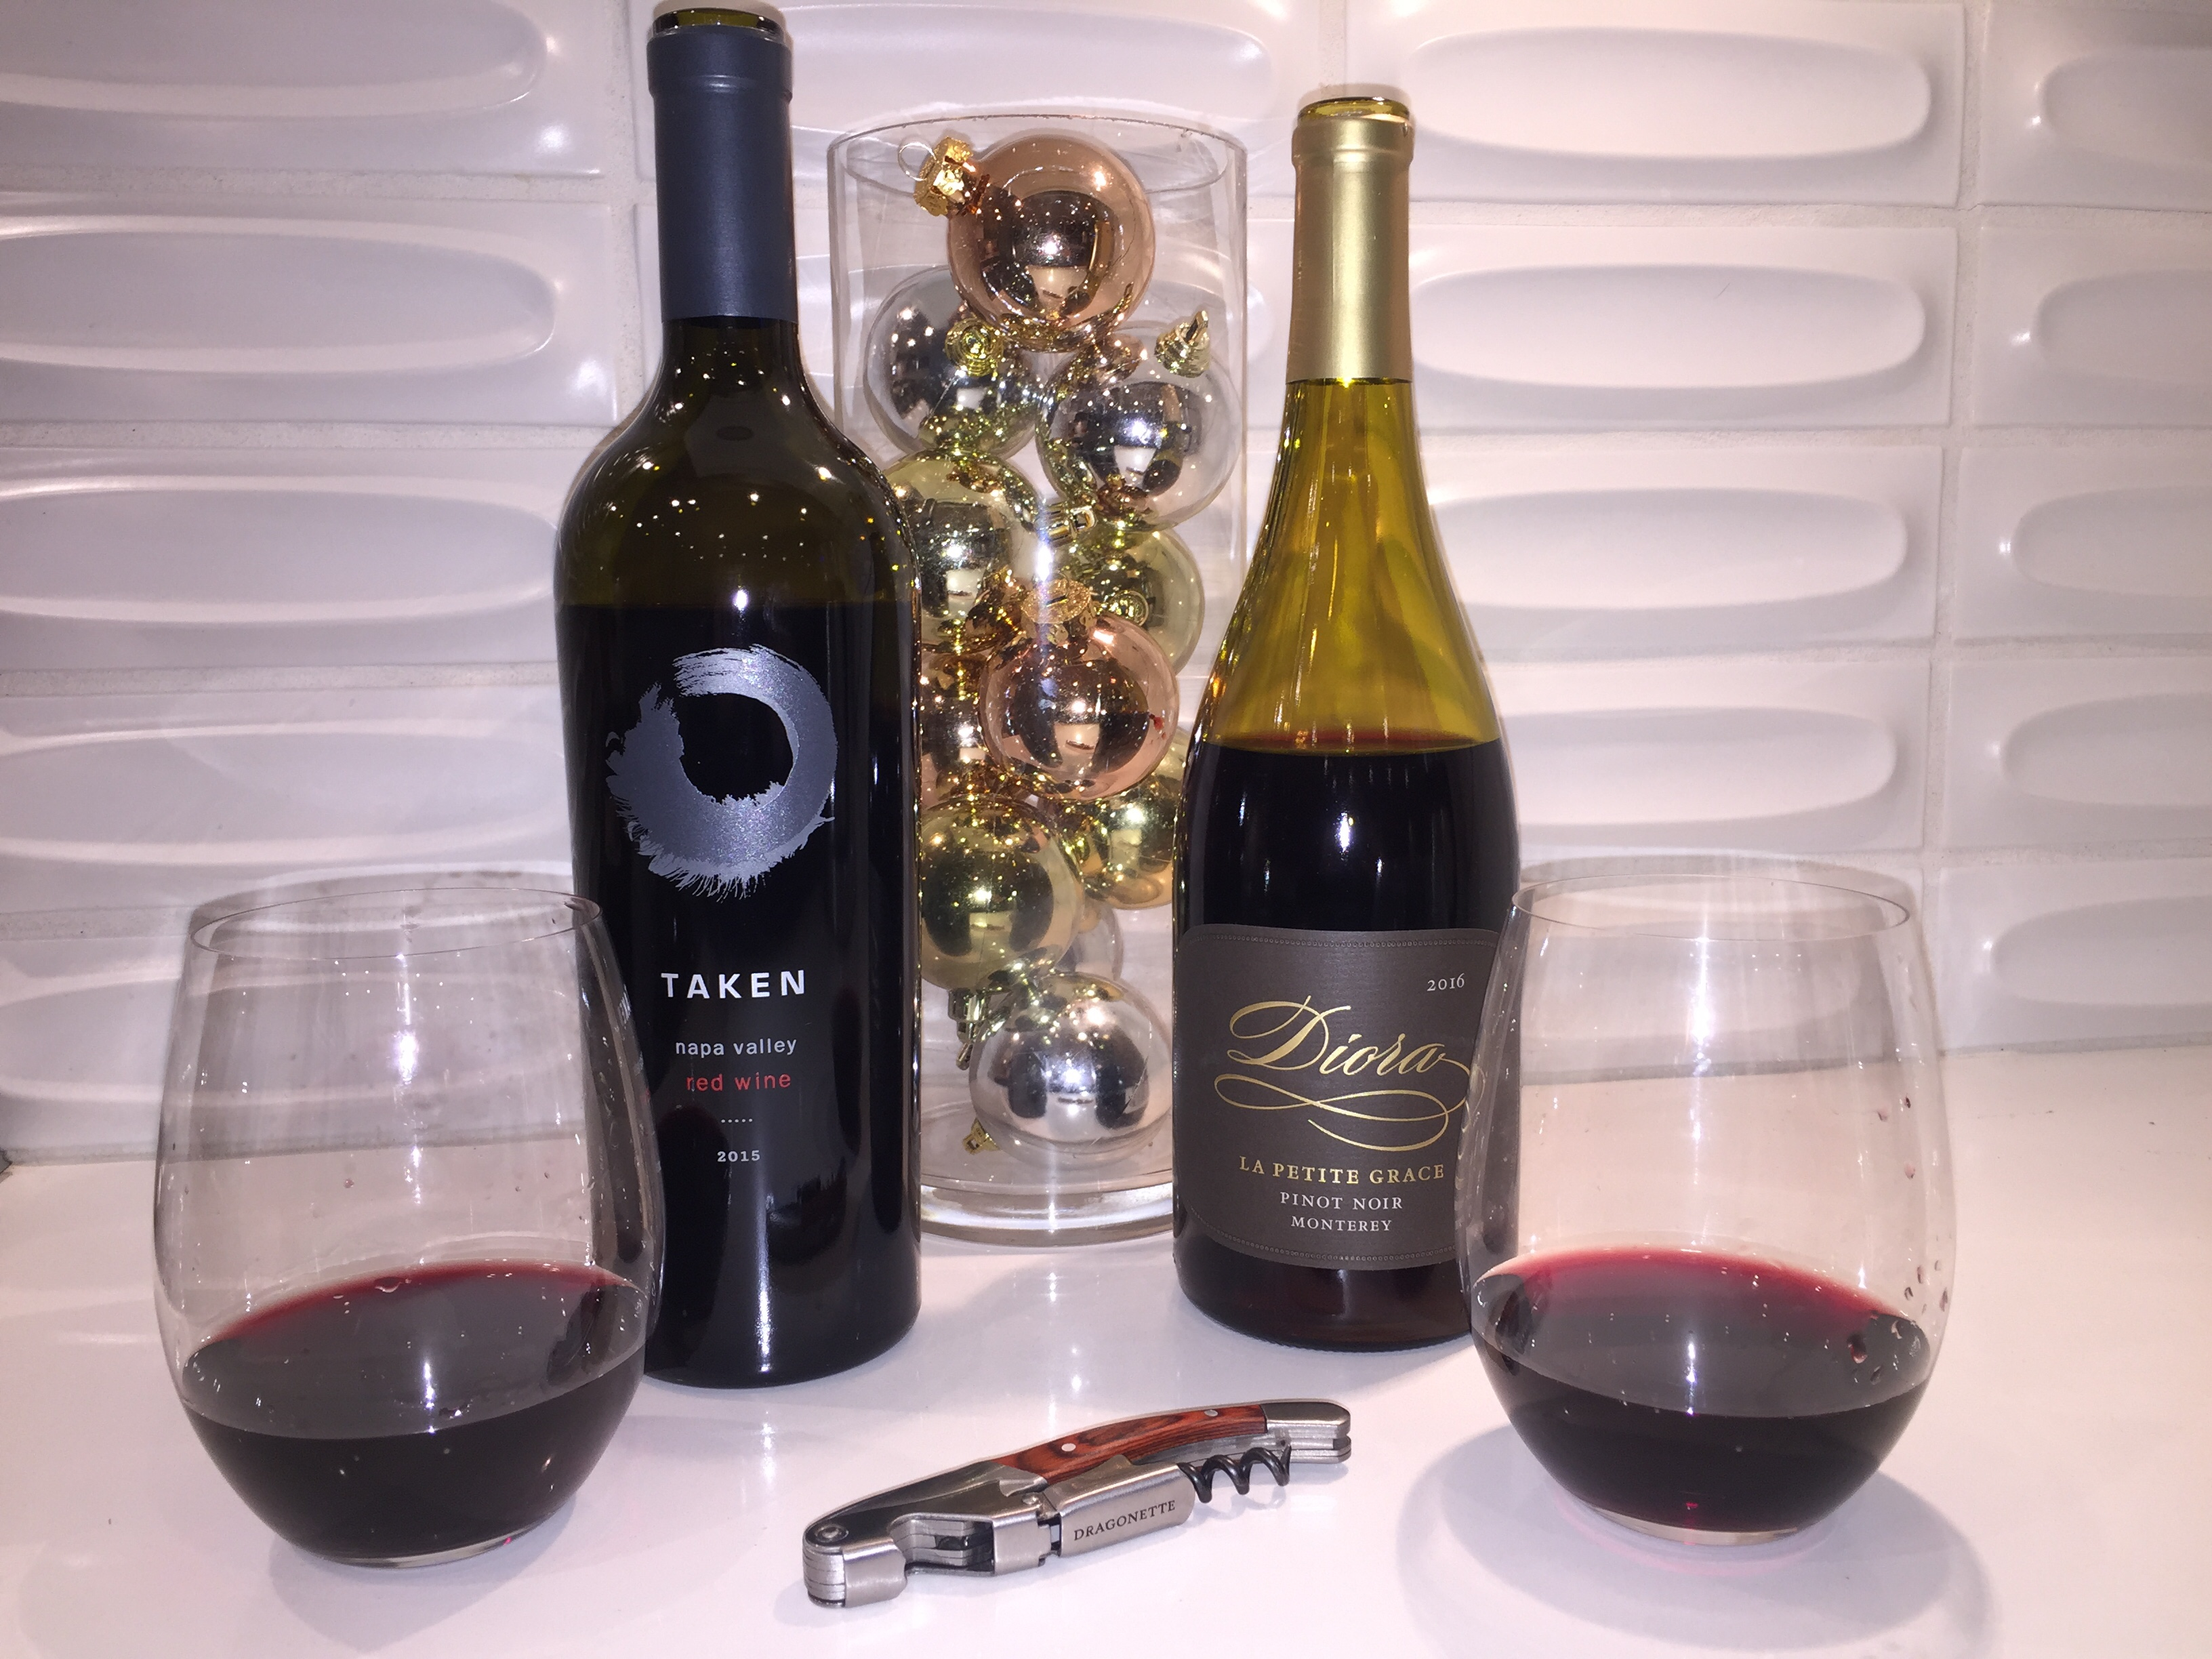 2015 Taken Napa Valley Red Wine & 2016 Diora Monterey Pinot Noir